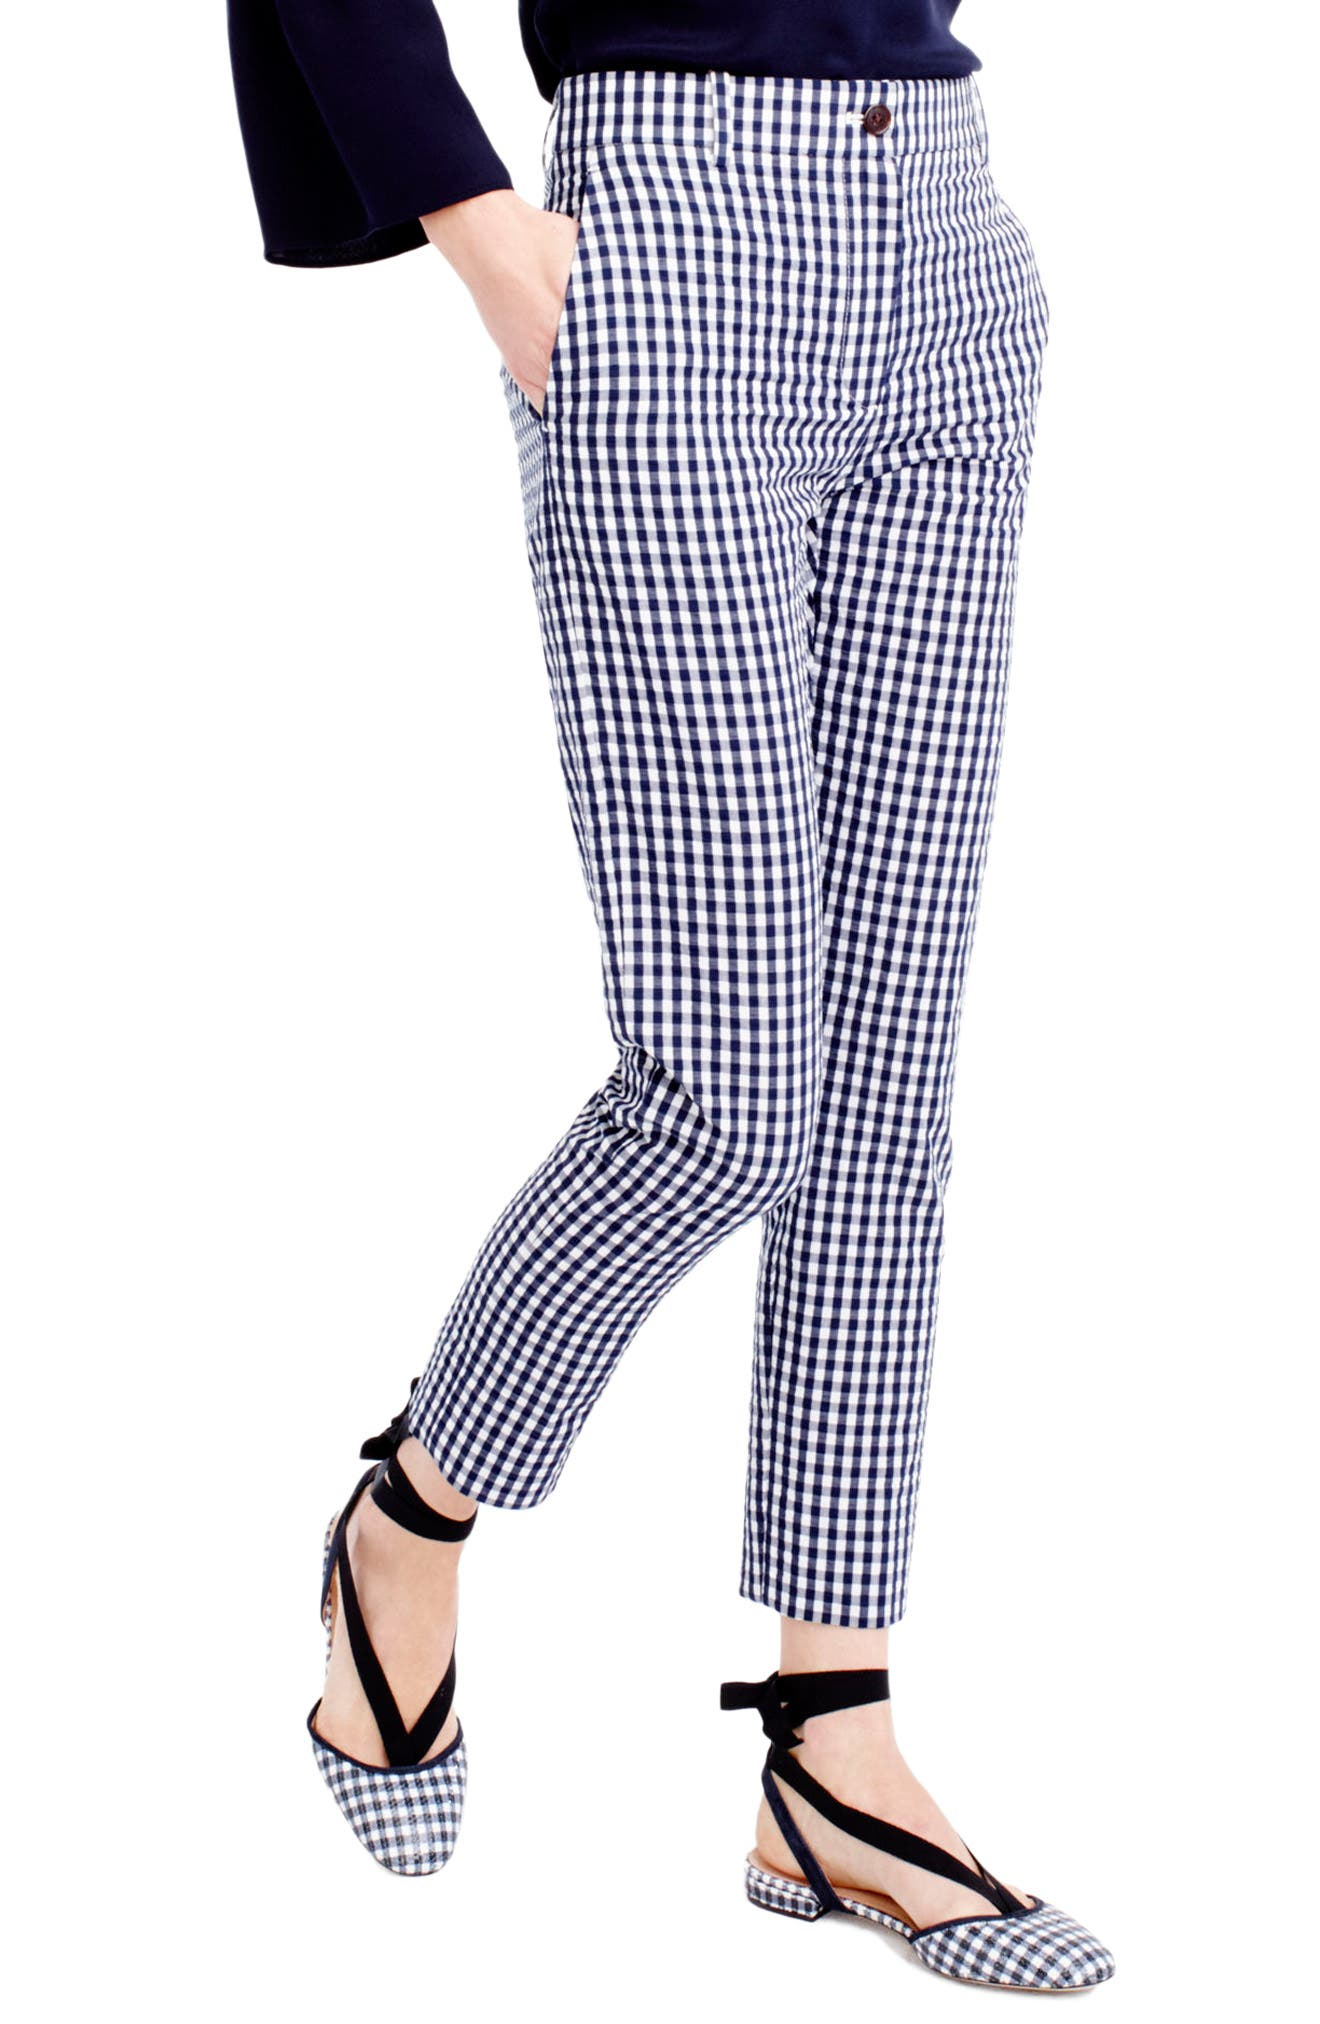 Alternate Image 1 Selected - J.Crew Puckered Gingham Cigarette Pants